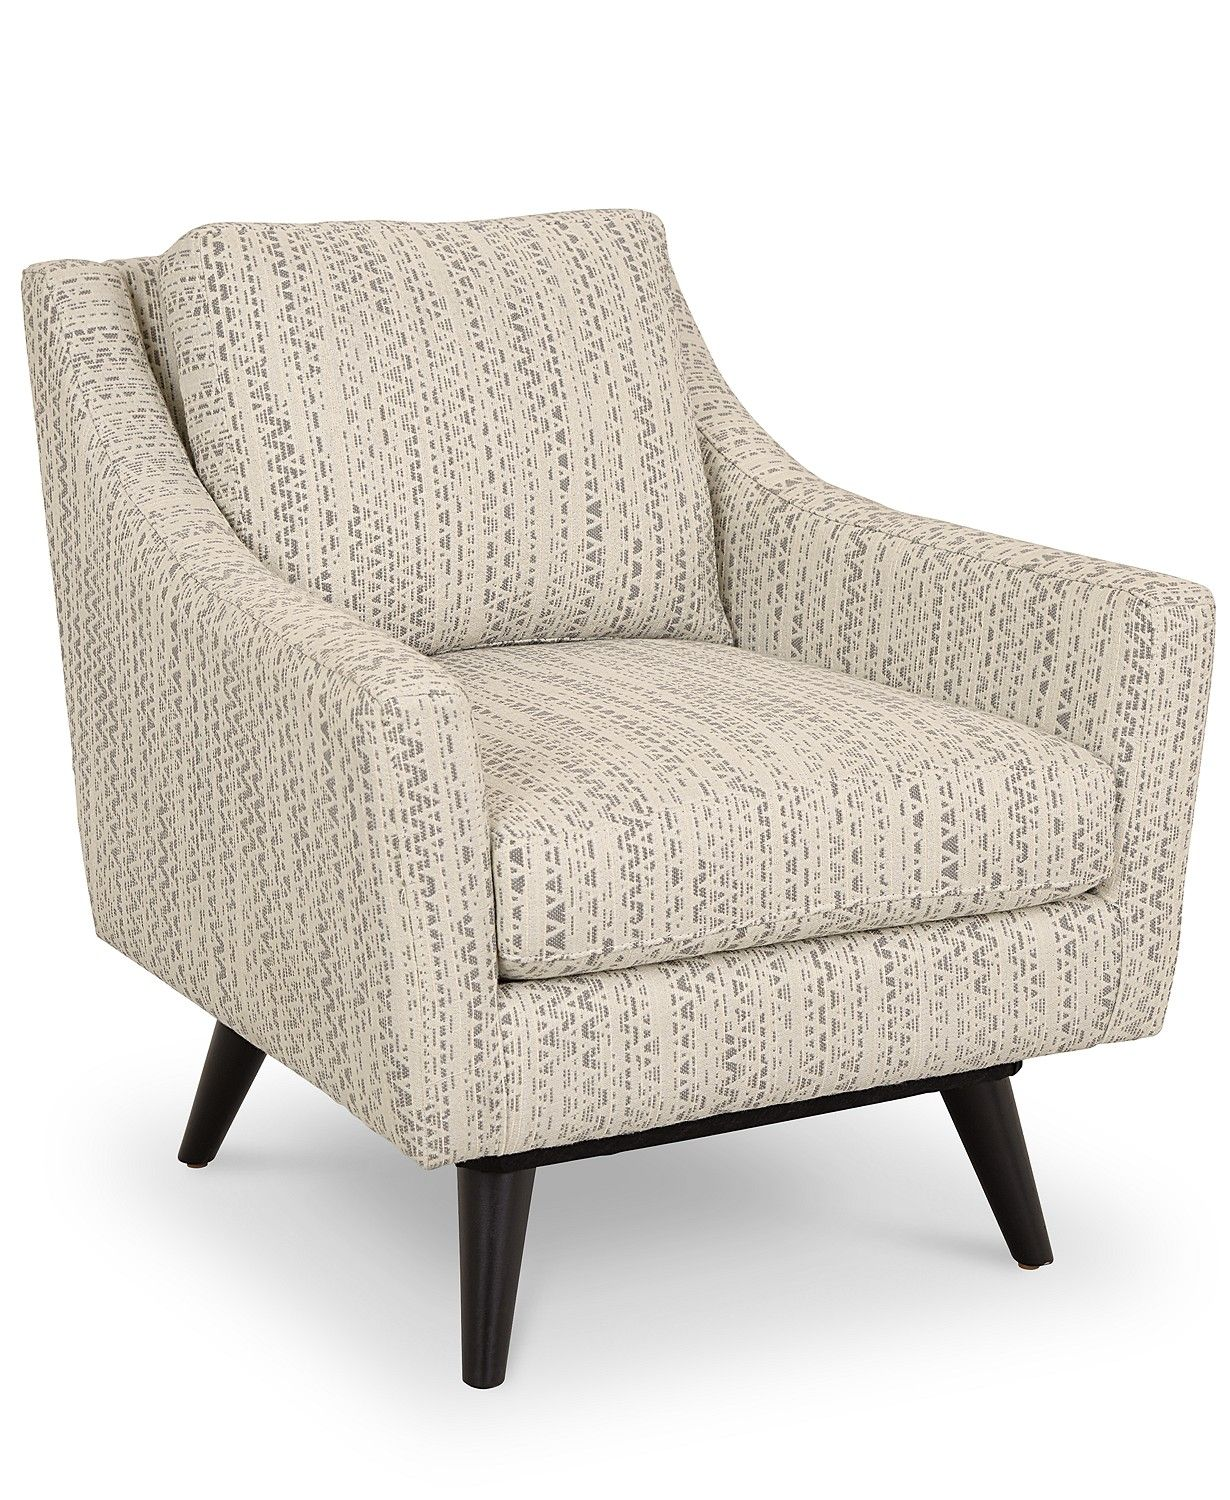 Fantastic Cistella 31 Fabric Accent Swivel Chair Created For Macys Machost Co Dining Chair Design Ideas Machostcouk